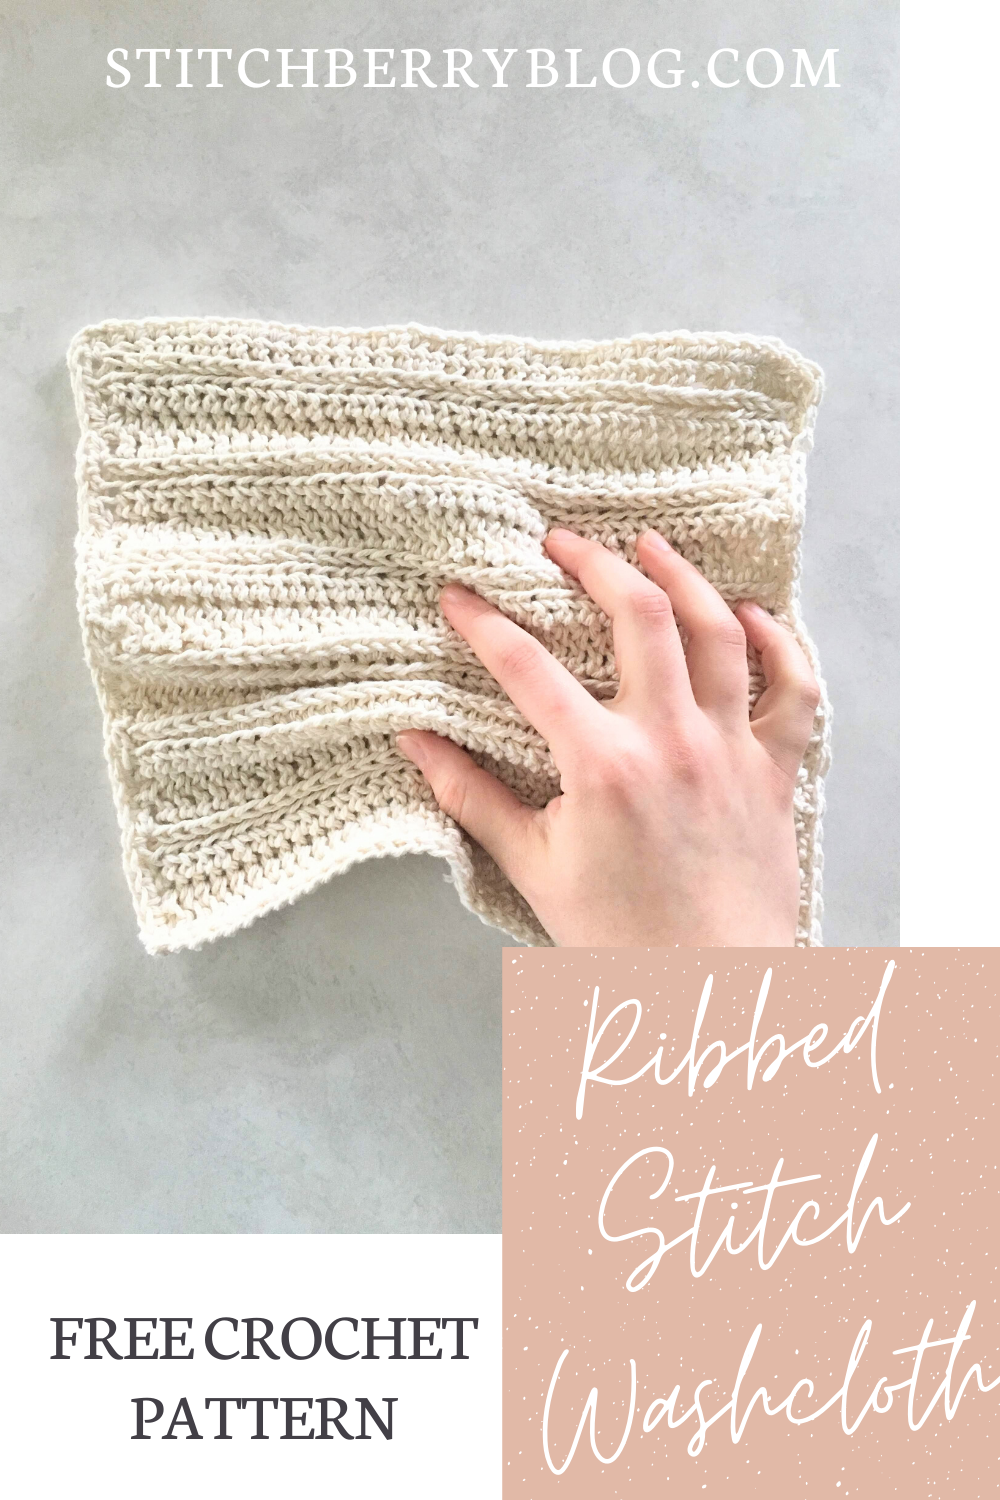 Ribbed Stitch Washcloth – Free Crochet Pattern